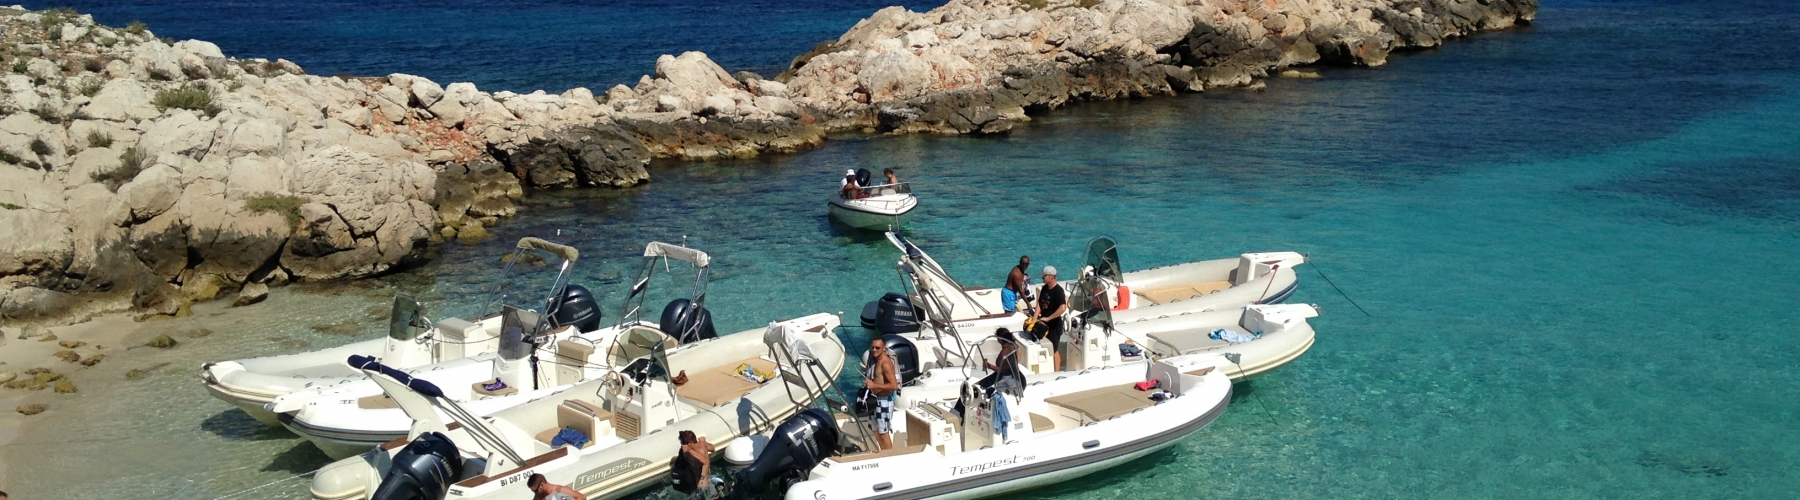 Seminar in Marseille – the choice of nautical or pedestrian tour